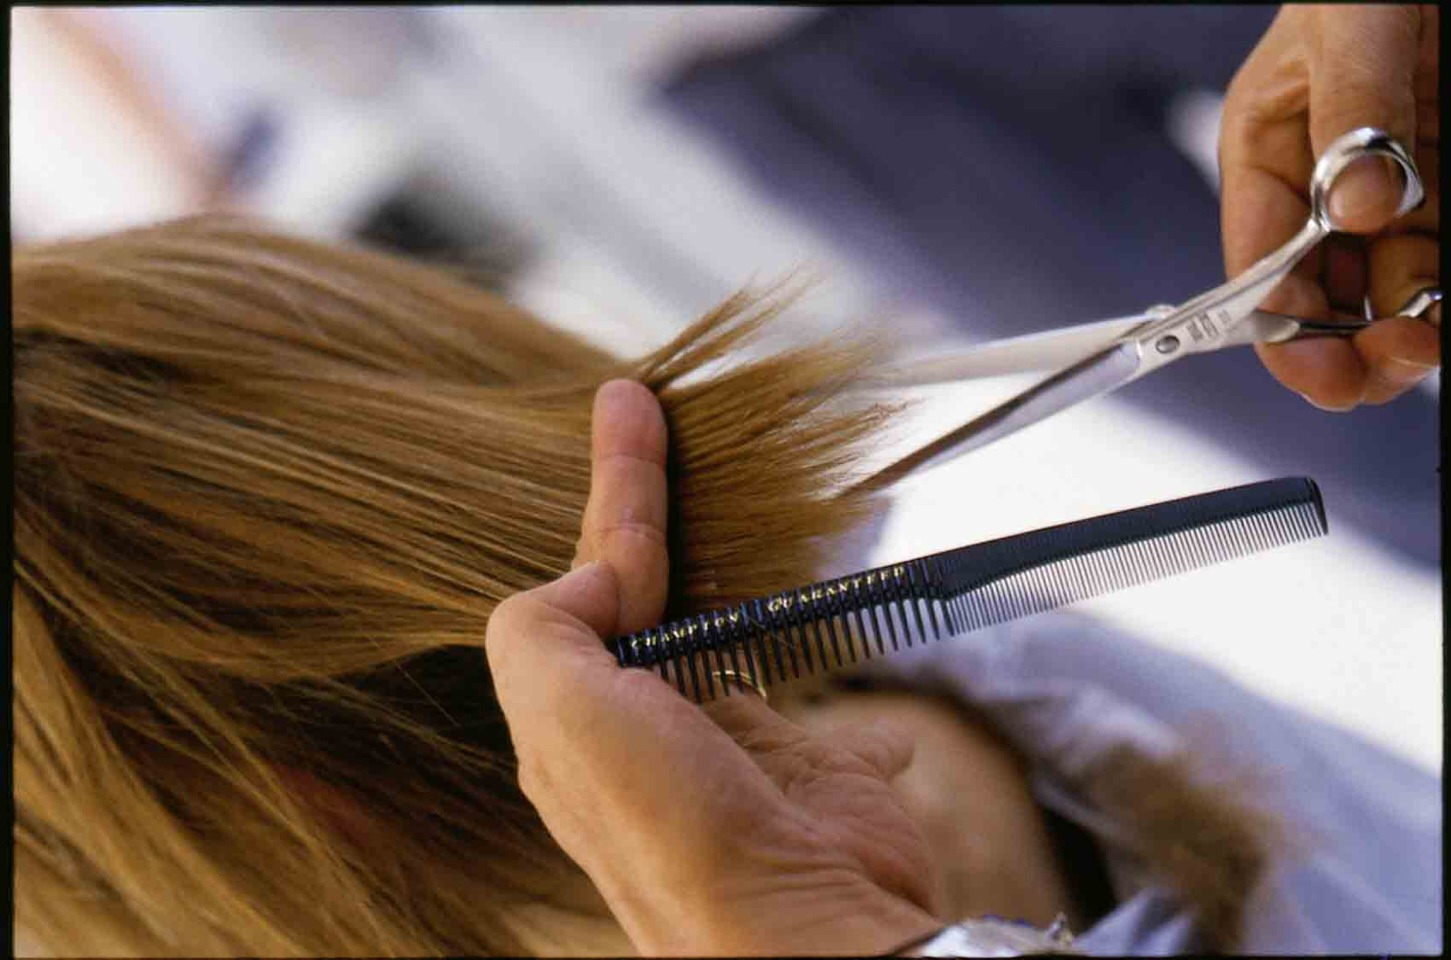 Get frequent hair cuts to trim split ends